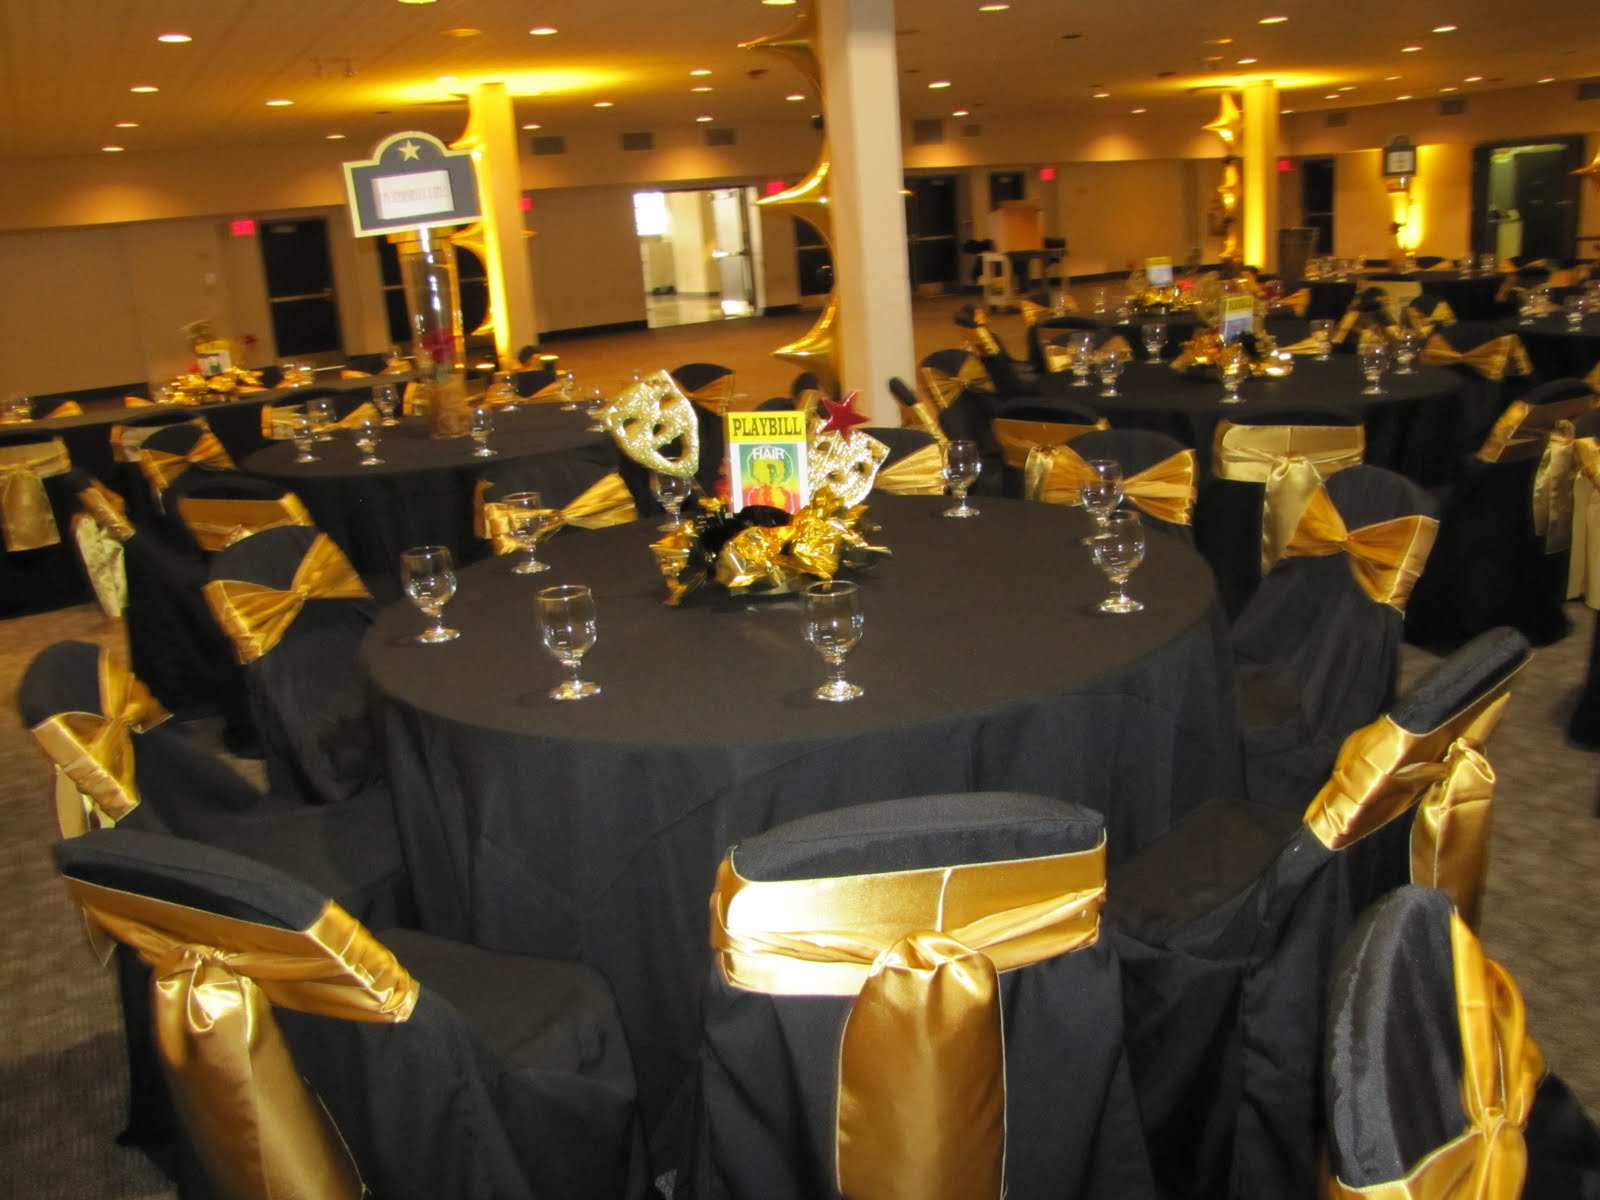 party people event decorating company broadway themed Black and Gold Centerpieces for Tables black and gold table centerpiece ideas